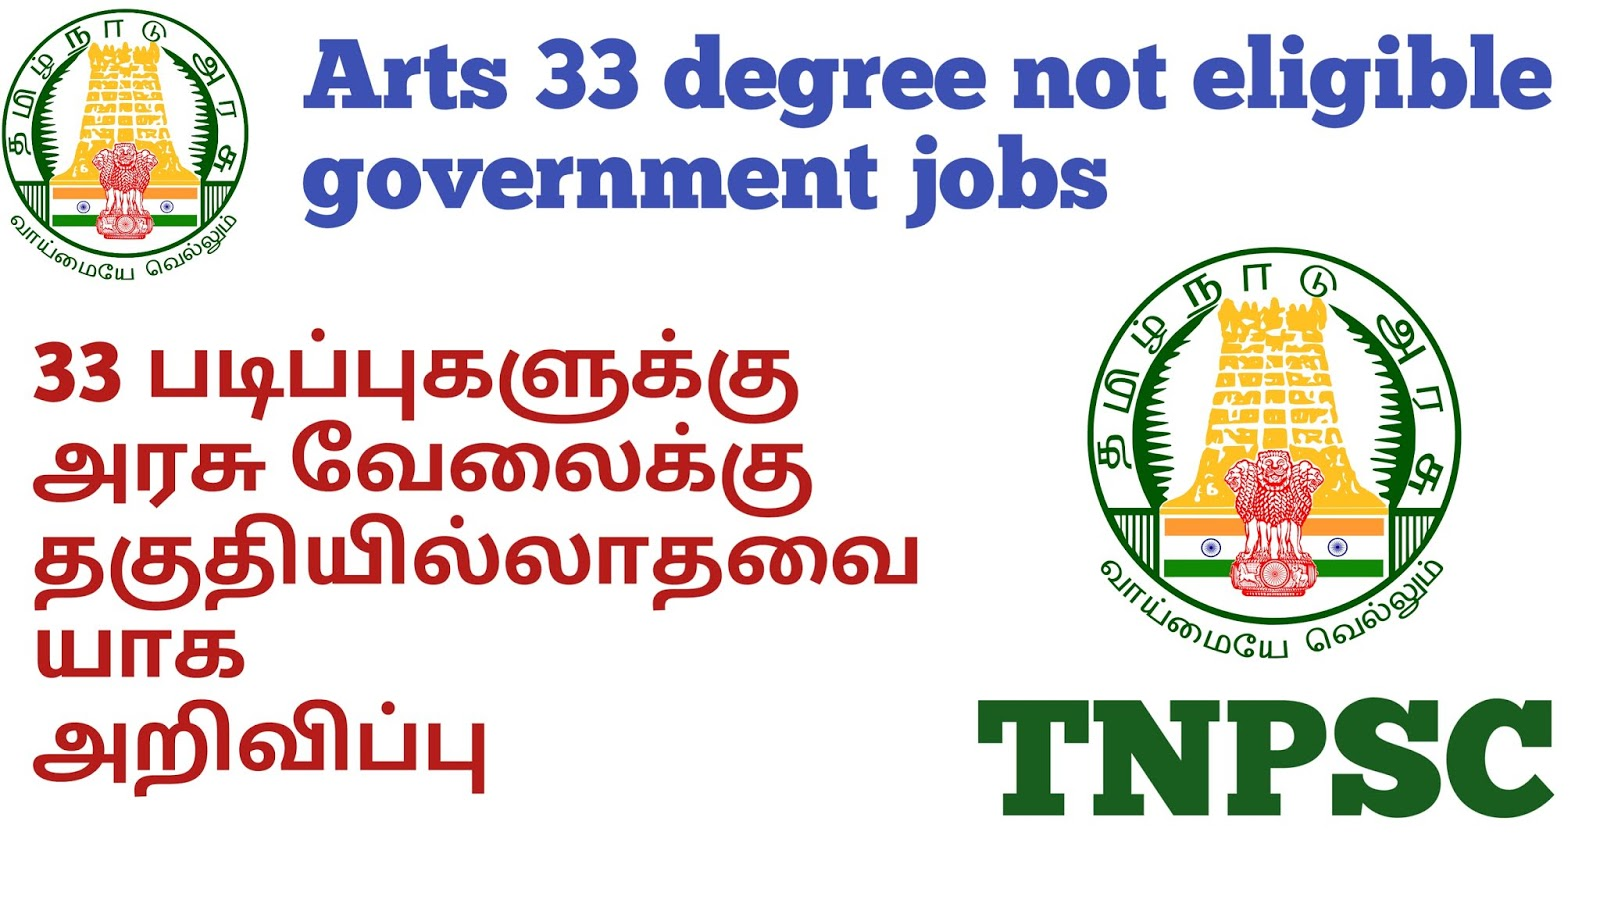 arts 33 degree not eligible government jobs  Government jobs